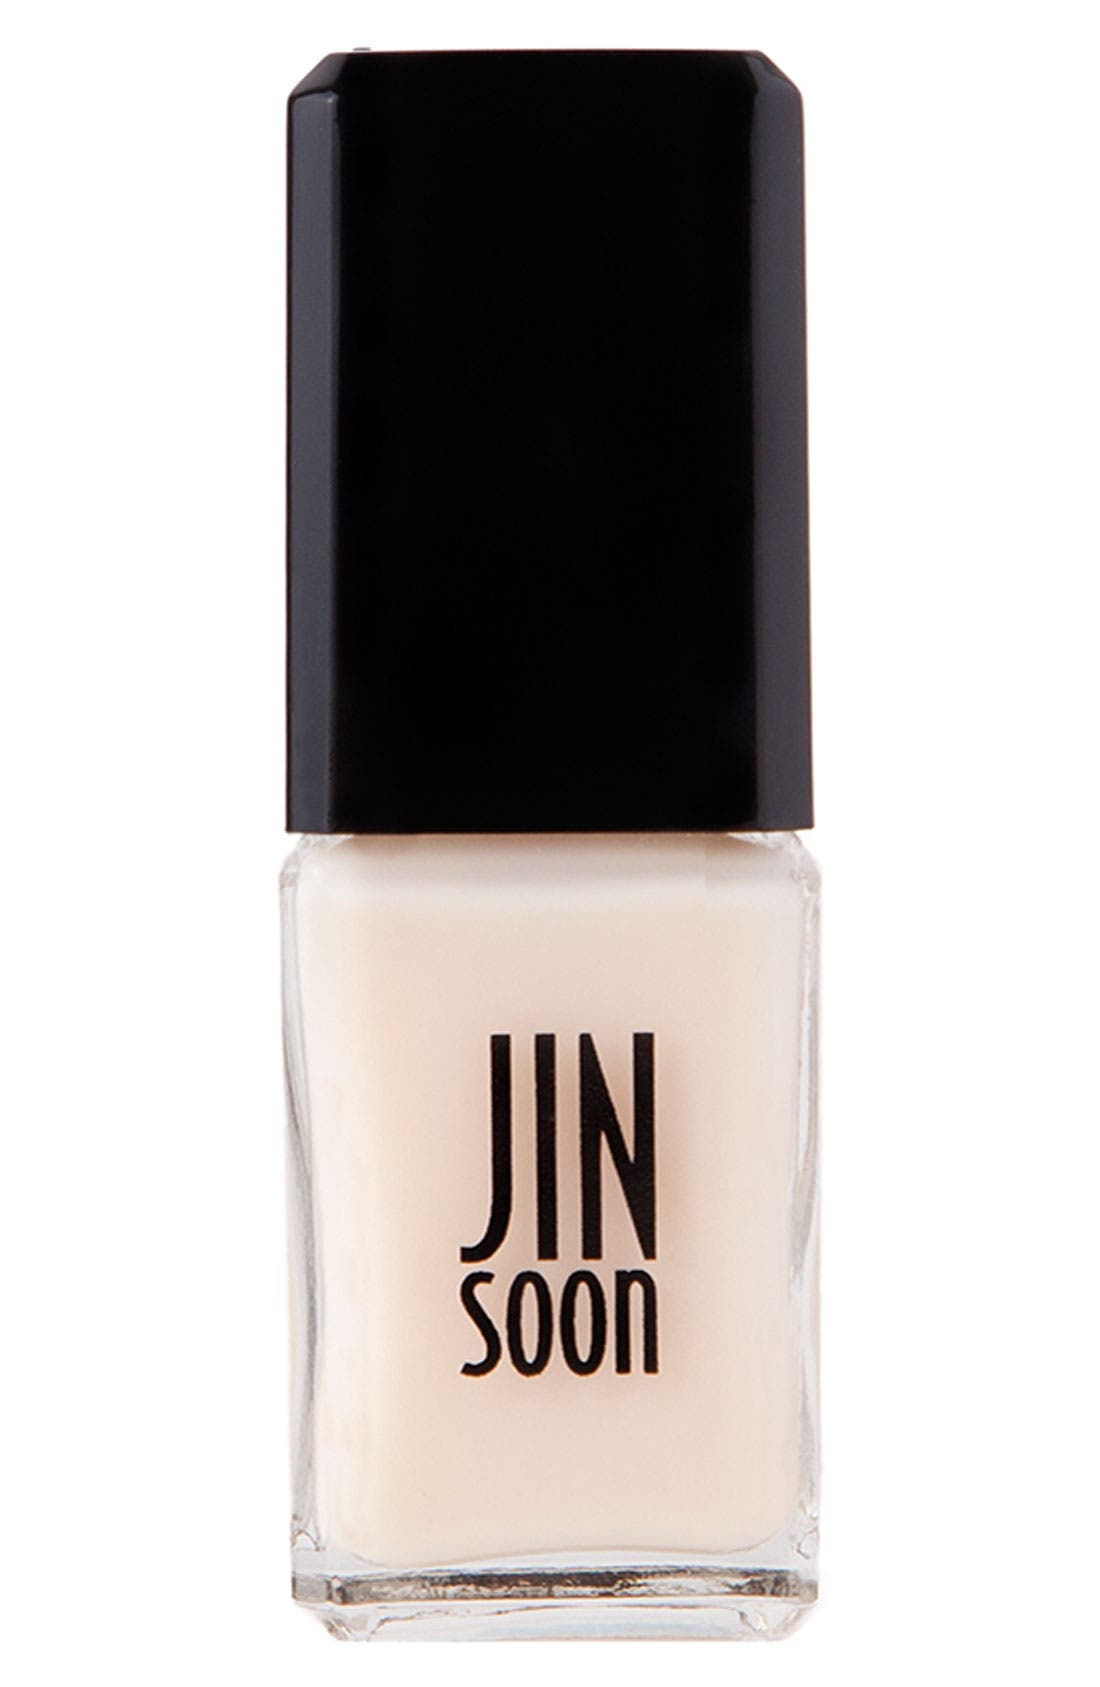 JINsoon 'Tulle' Nail Lacquer